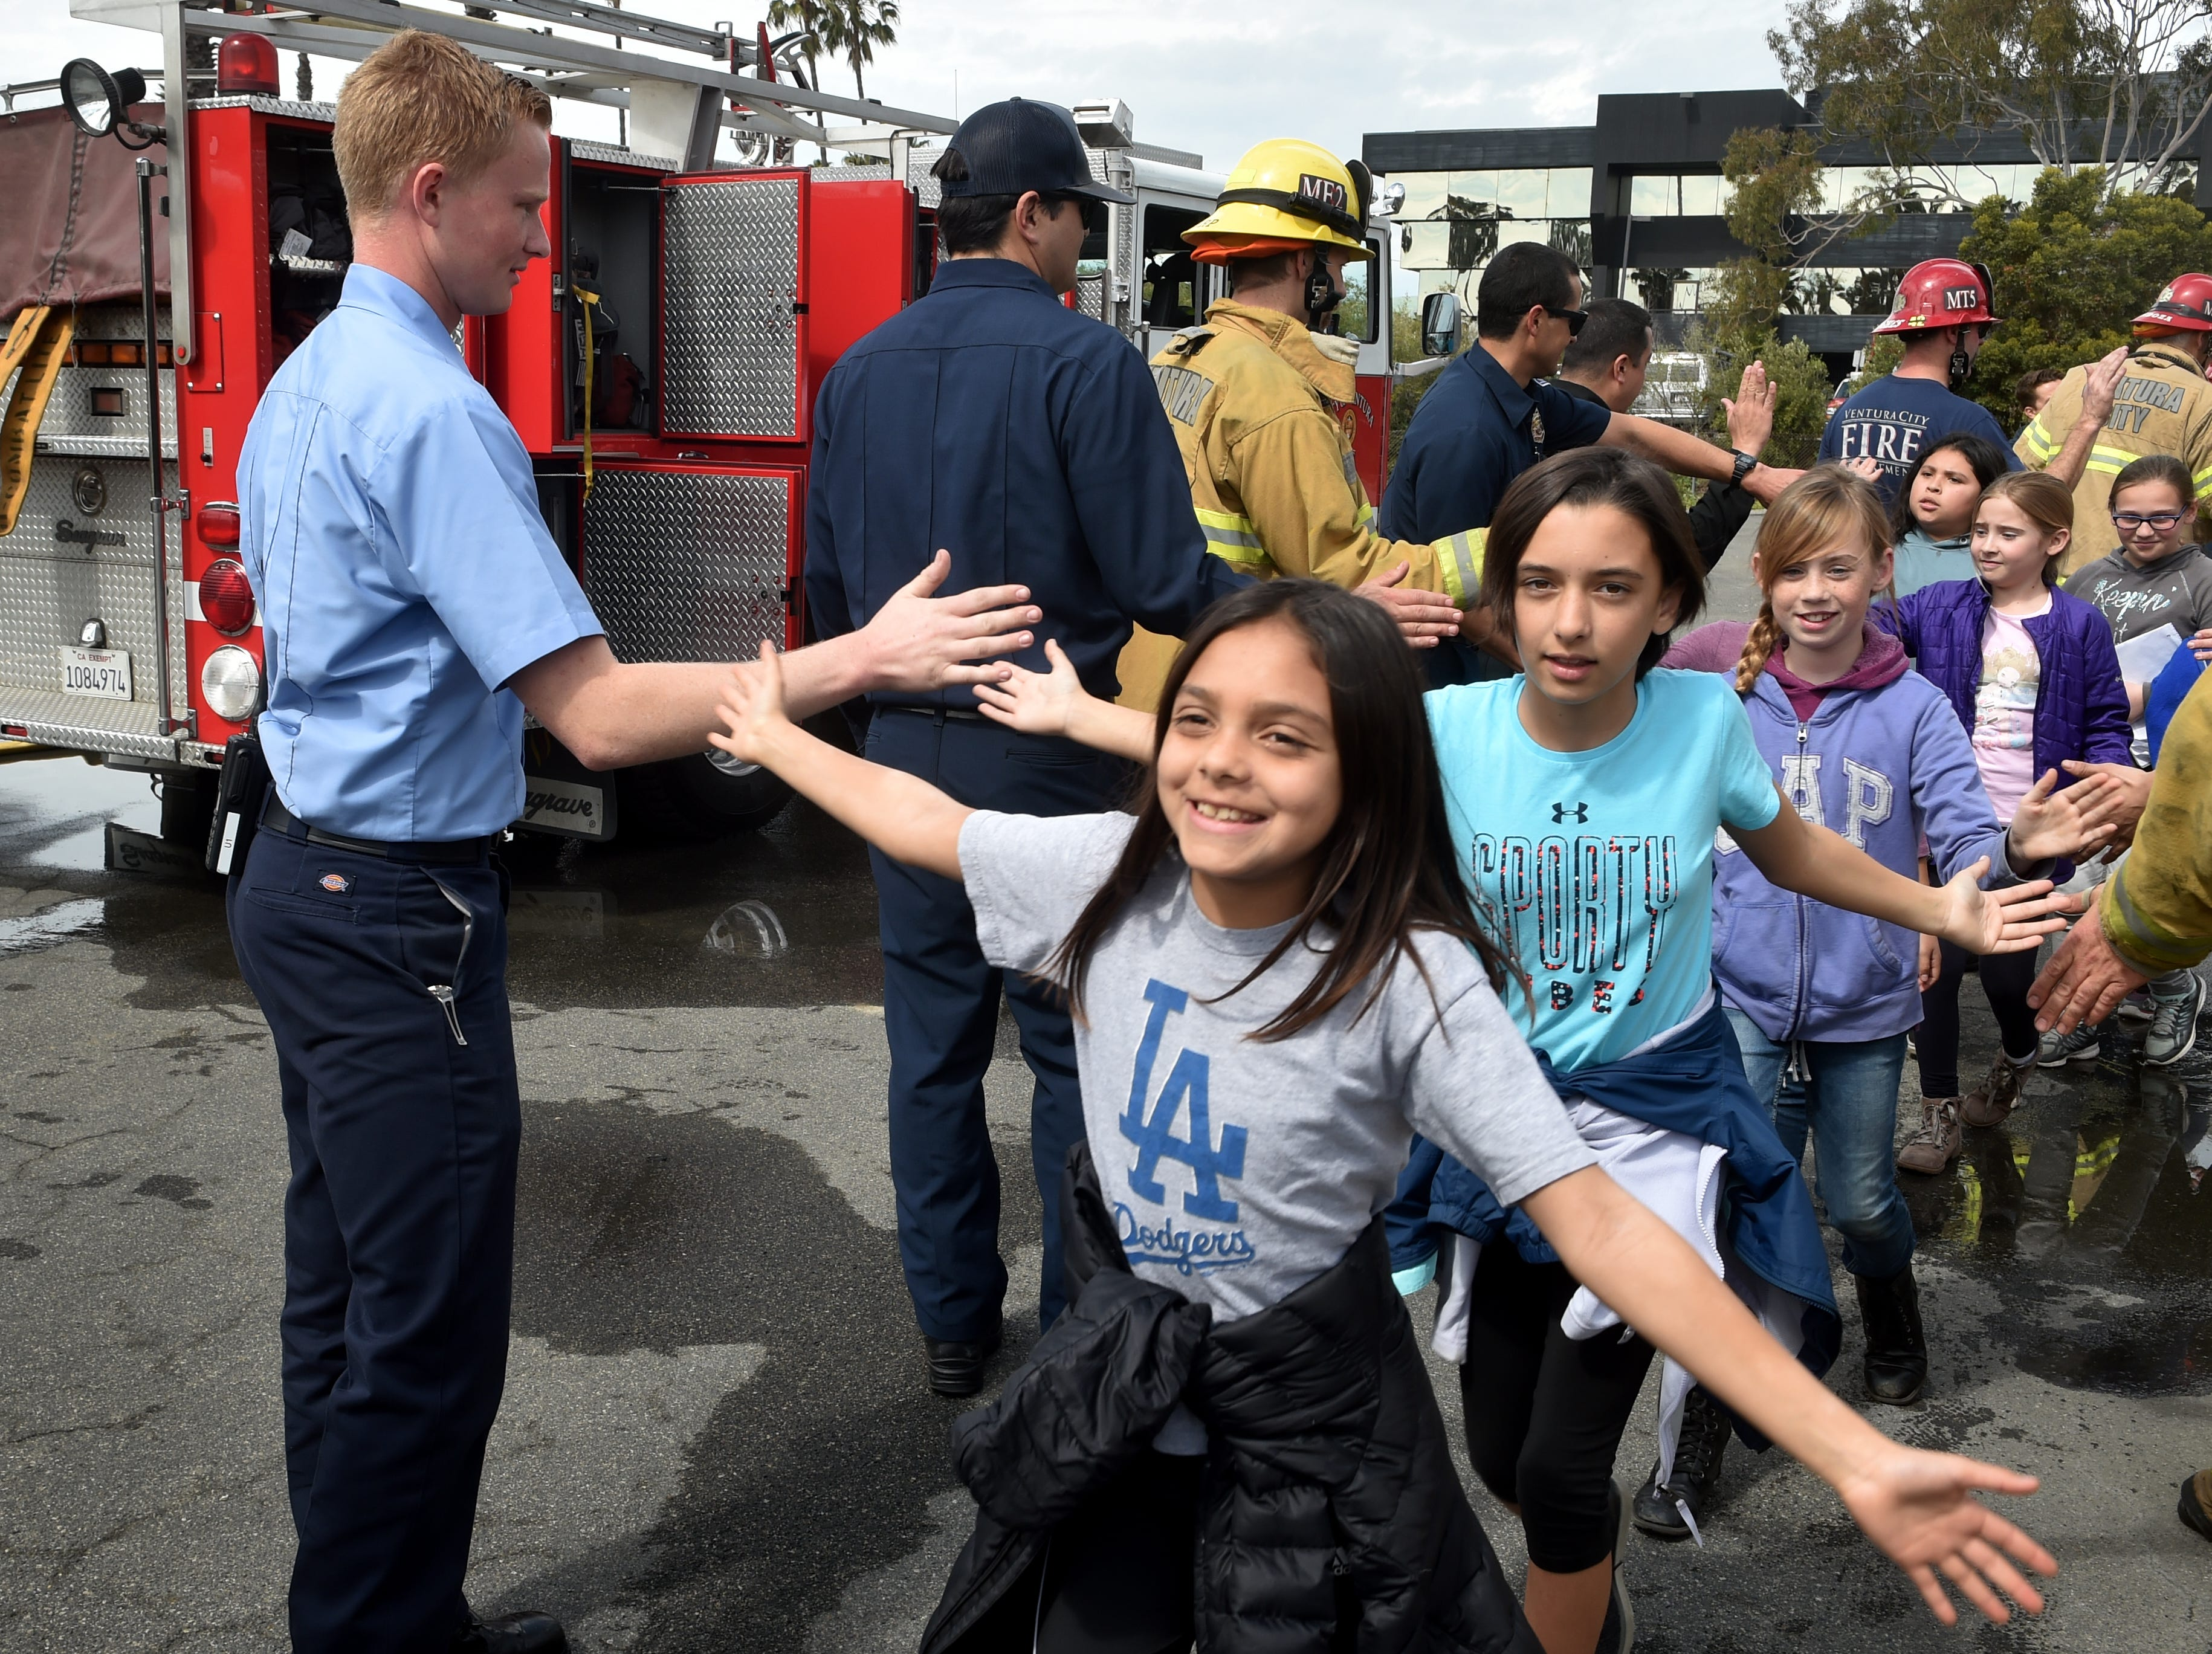 Sydney Mendez, left, and Chloe Malone, fourth-graders at Juanamaria School in Ventura, charge through a gauntlet of high-fives at the end of Ventura Fire Department's annual Fire Safety Day on Tuesday.